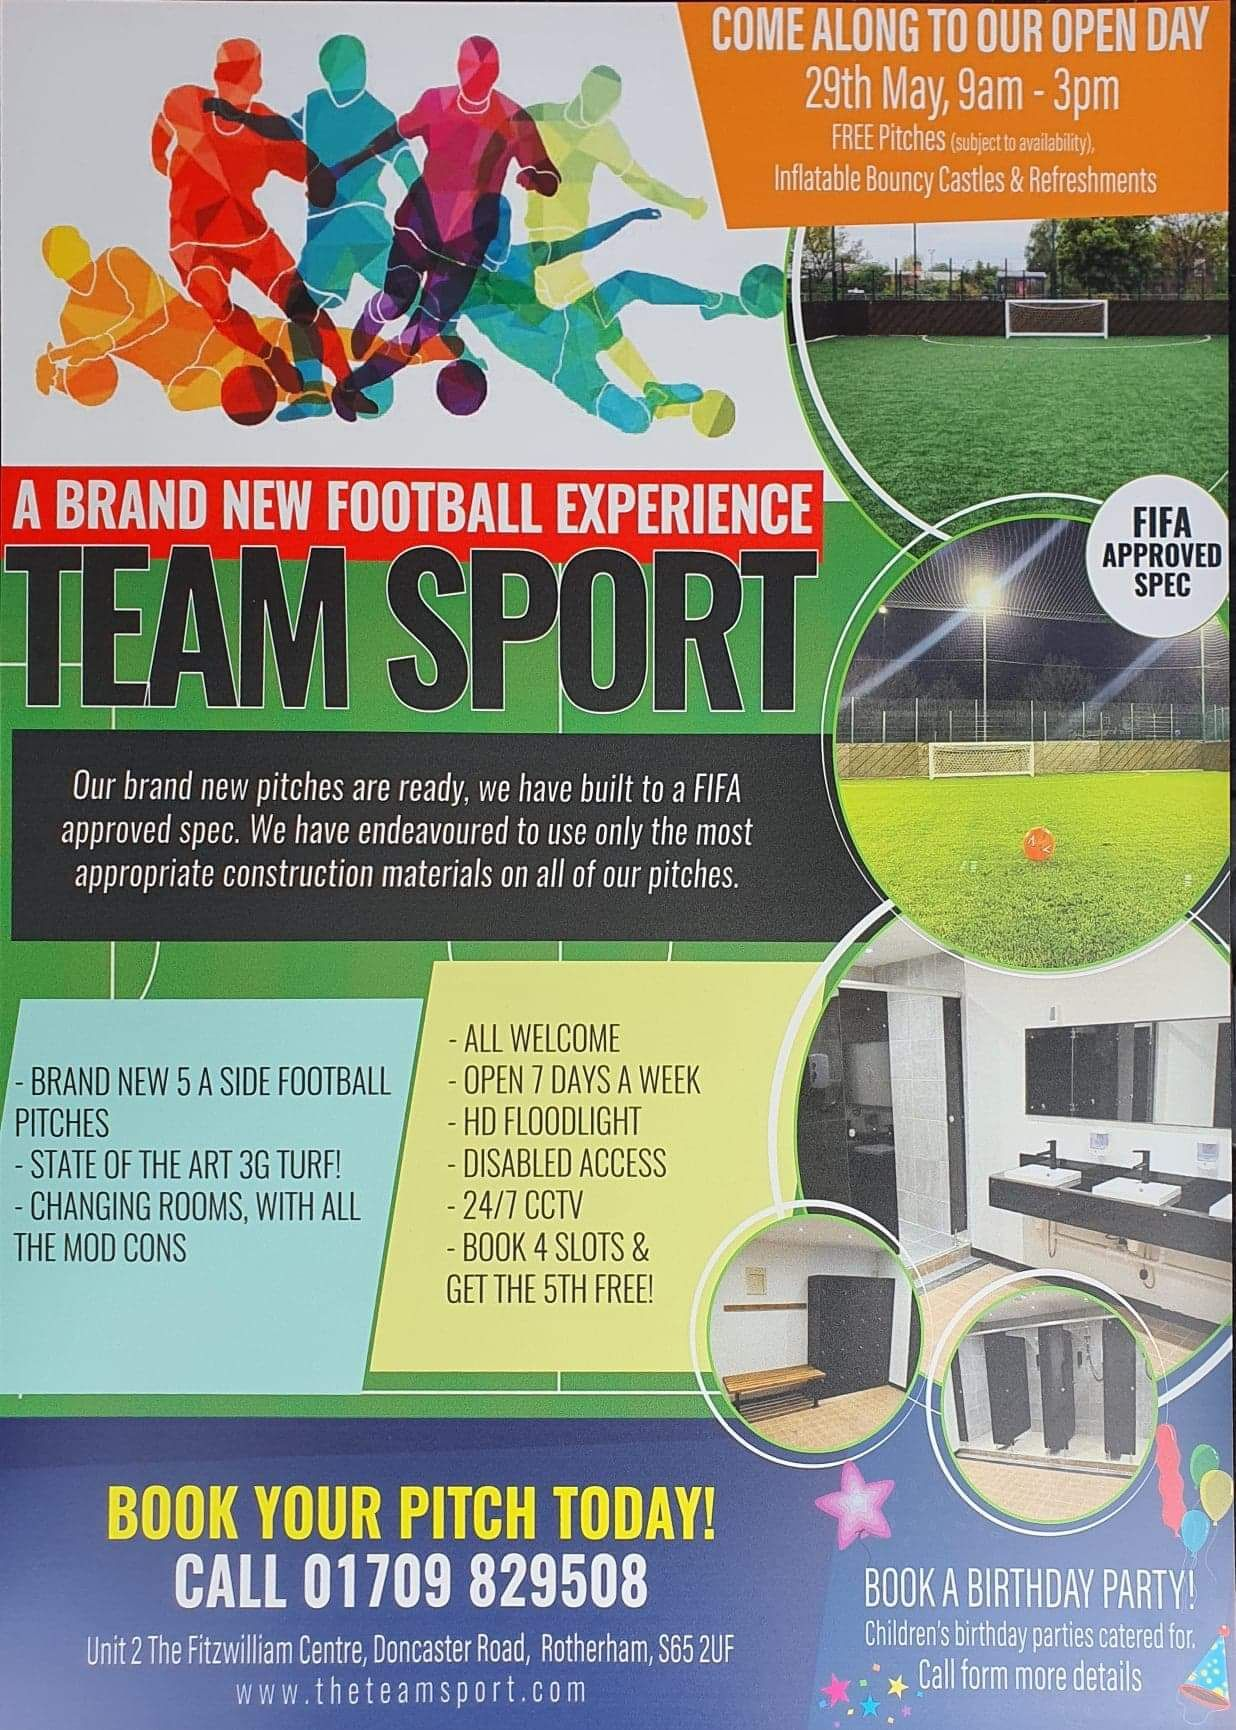 Now the season has ended for the Millers, are you still hungry for football? Get your fix down at Team Sport opening in Rotherham - Here's a flyer with details of an open event on 29th May and there's lots more info across at their website which is www.theteamsport.com